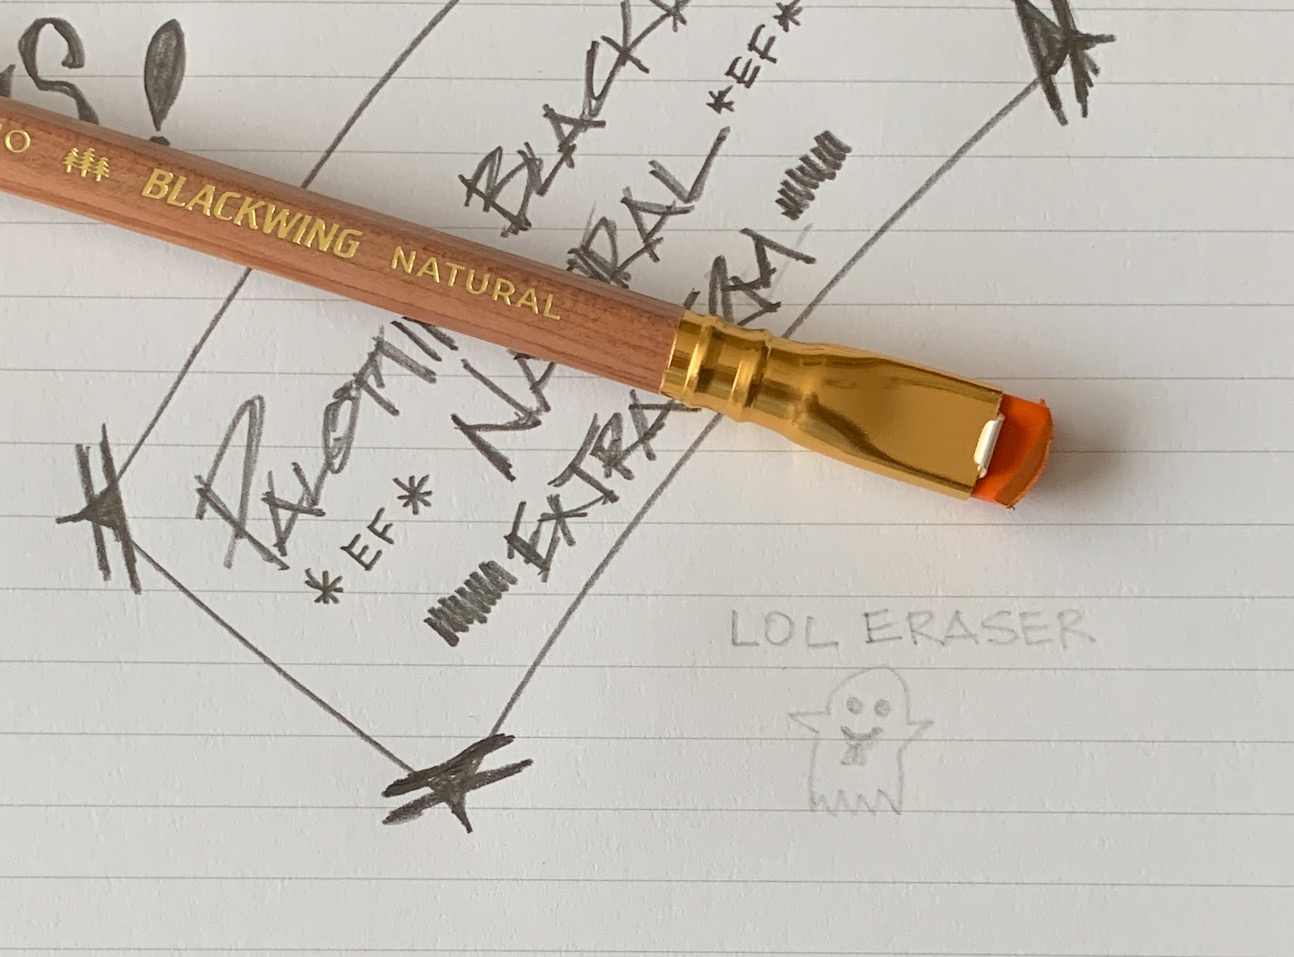 Palomino Blackwing Eraser